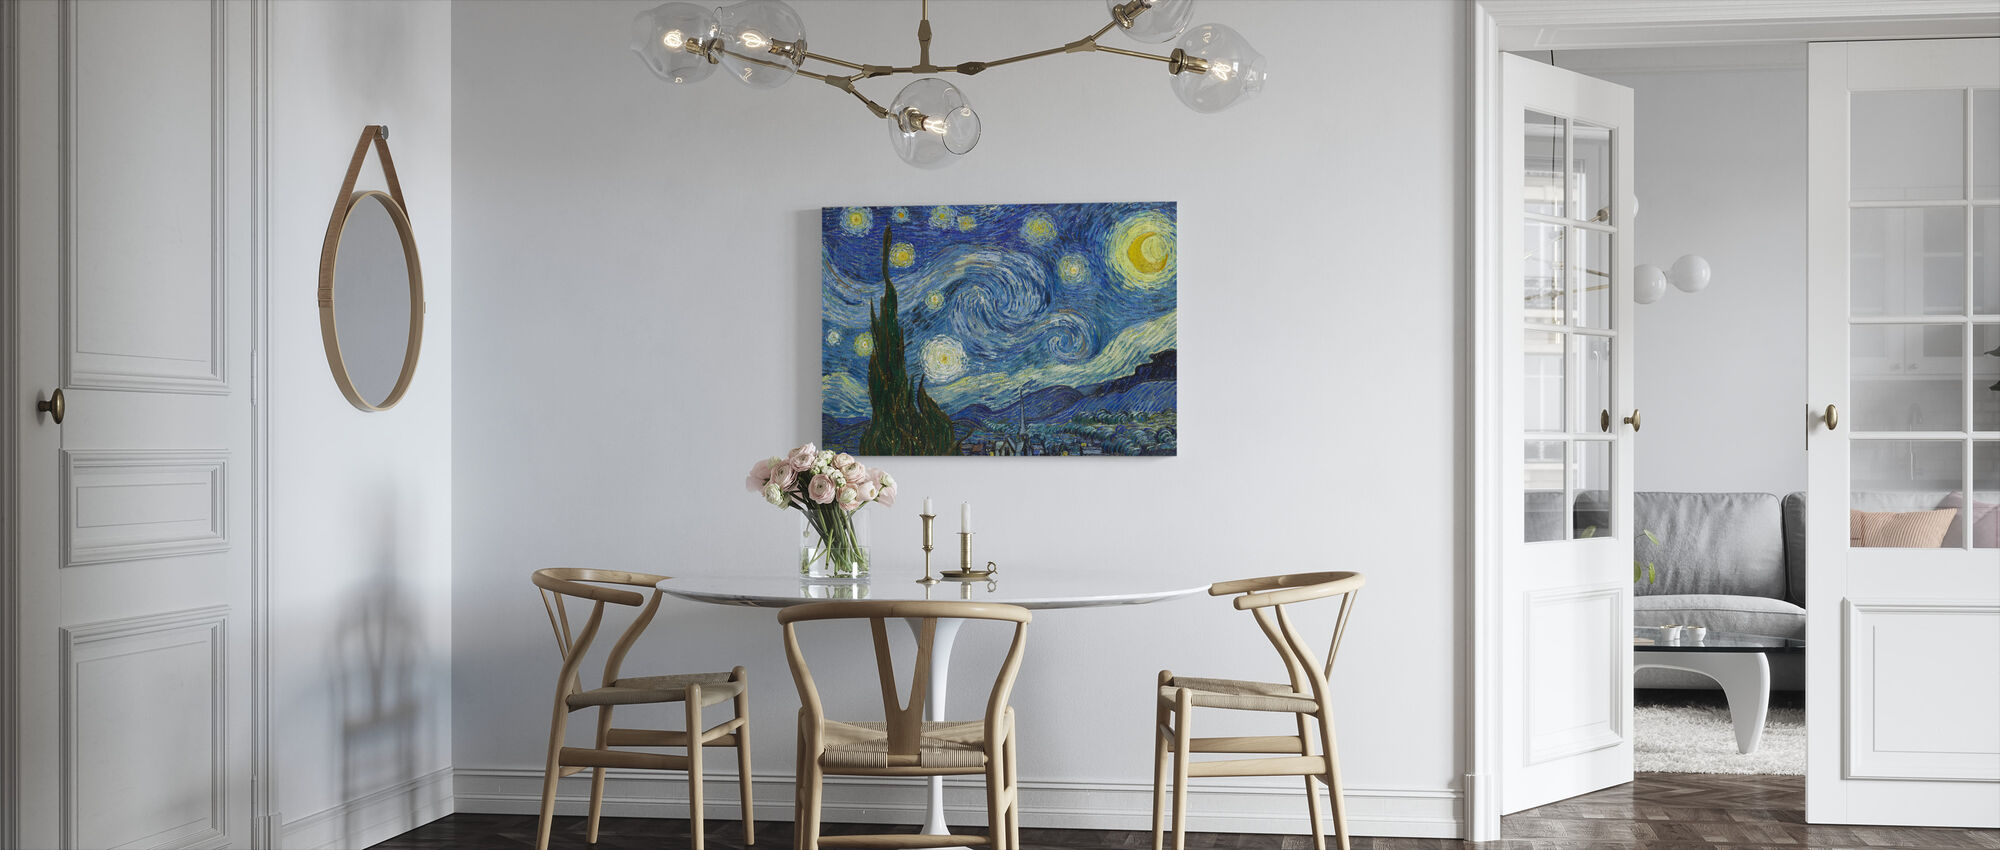 Vincent Van Gogh - Starry Night - Canvas print - Kitchen